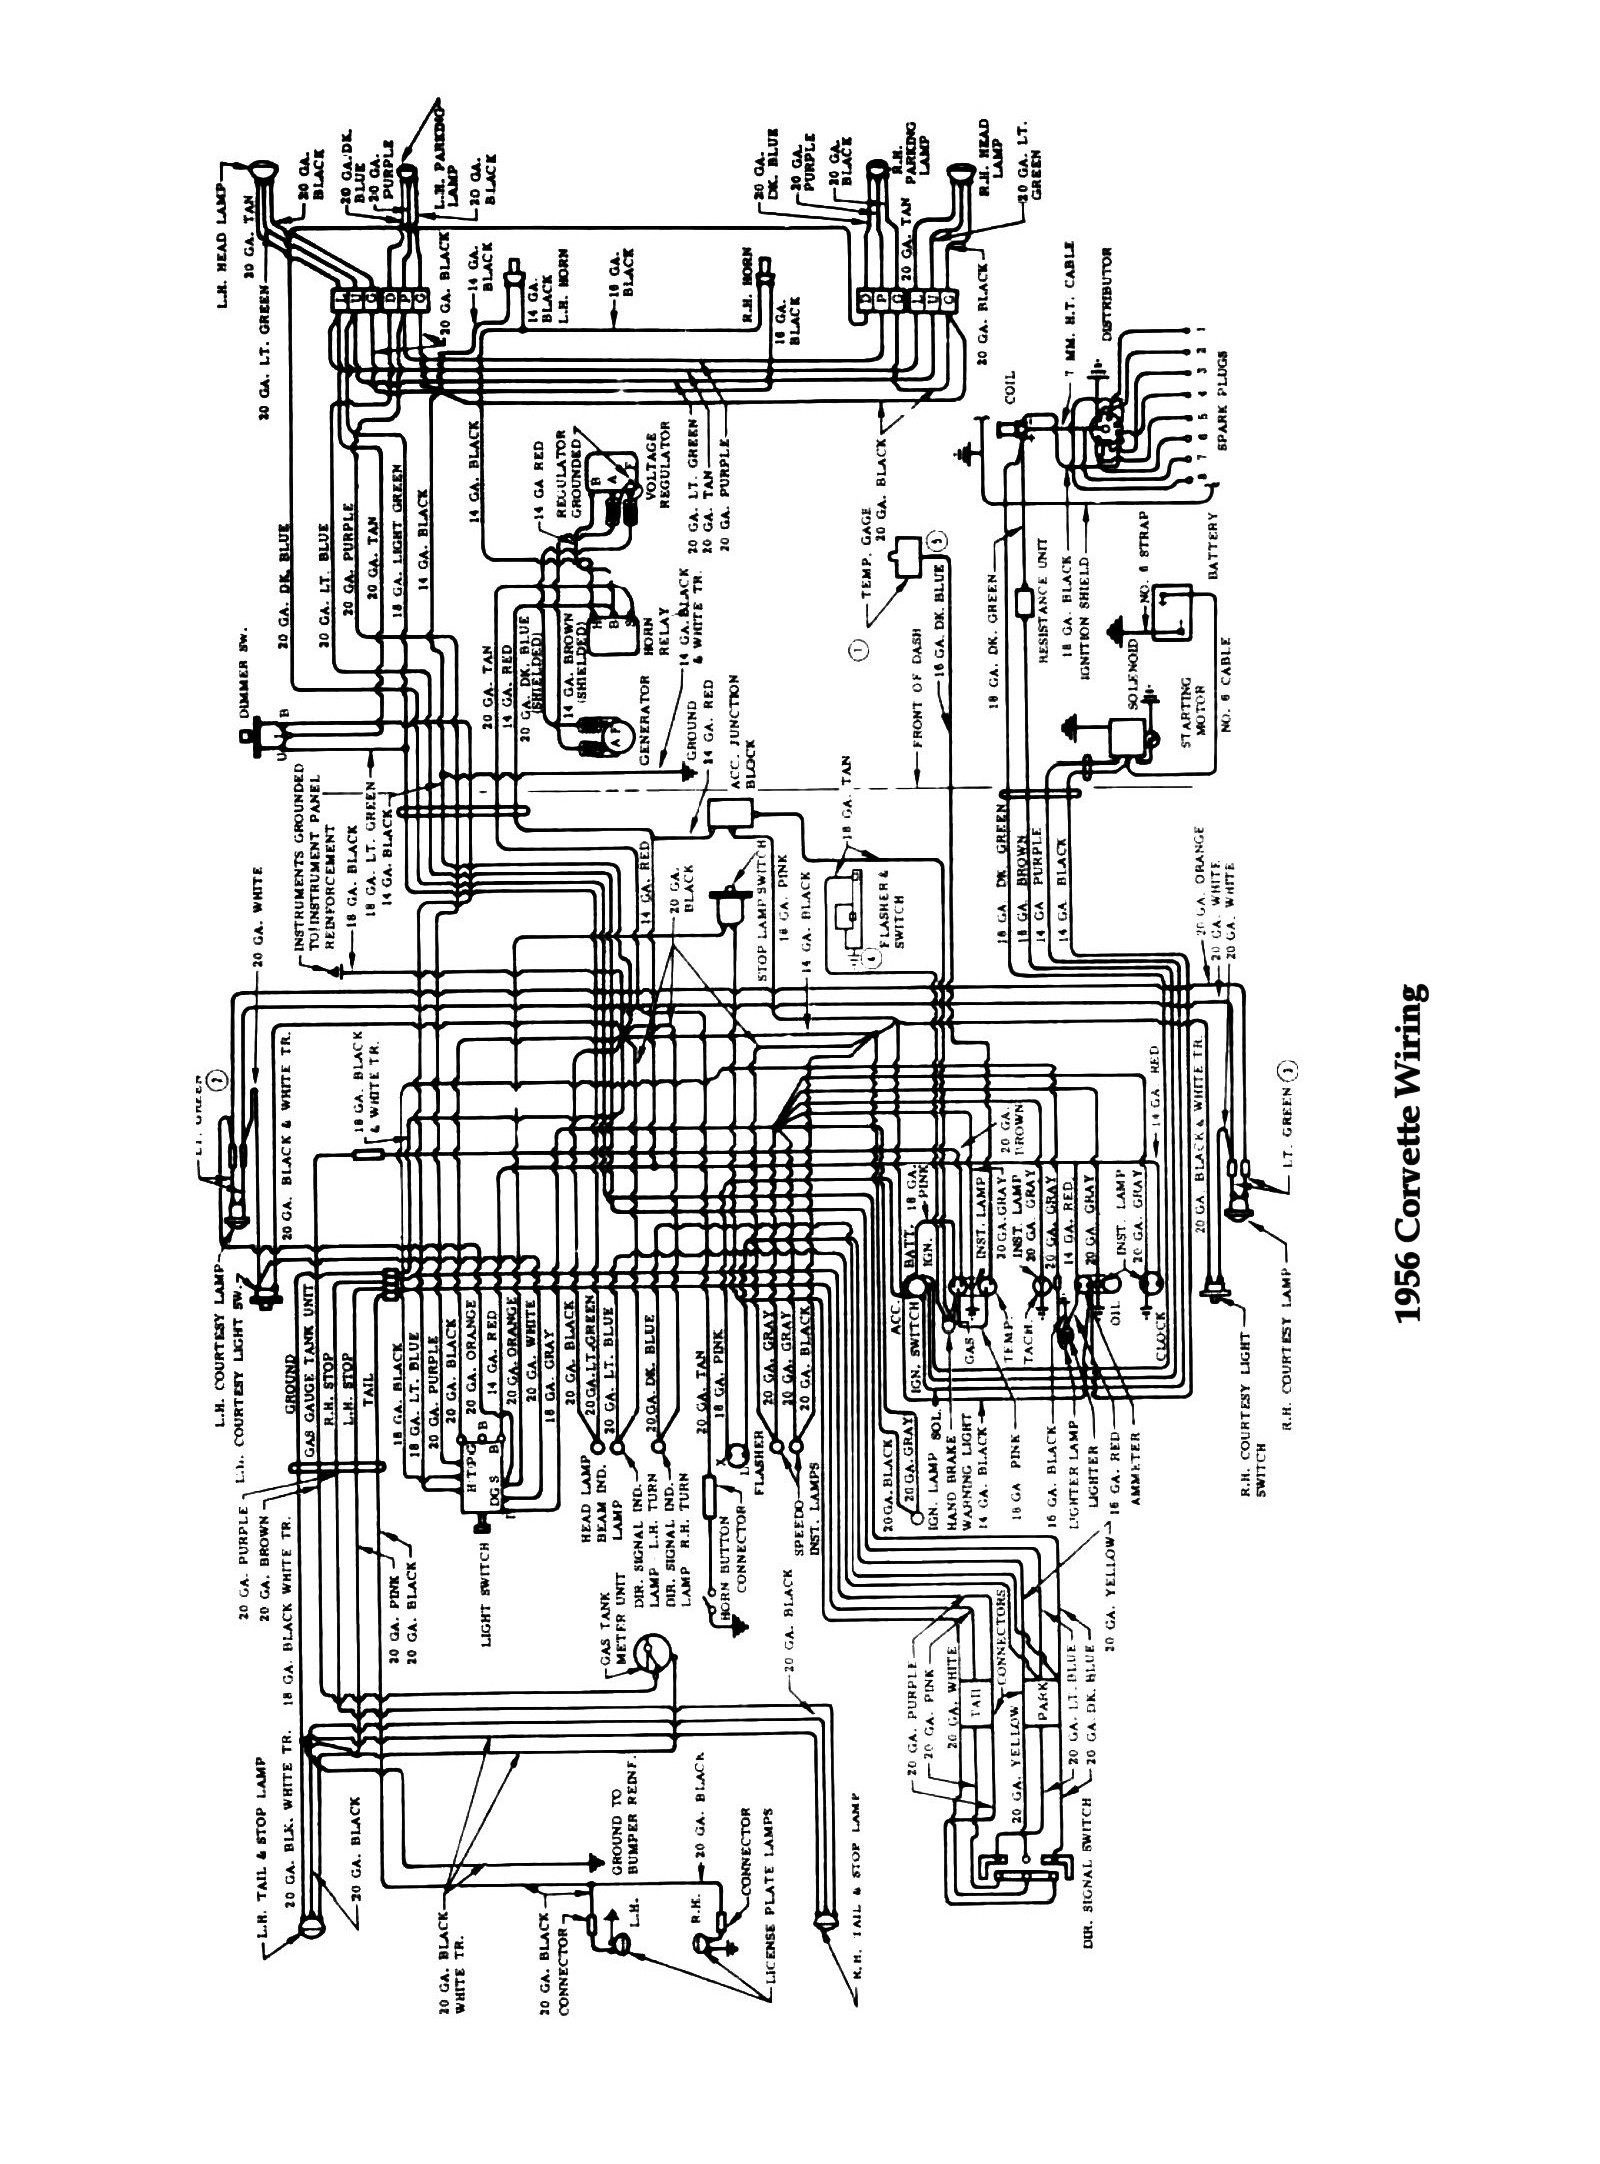 hight resolution of 1966 cadillac convertible wiring diagram wiring diagram paper 1966 cadillac deville wiring diagram